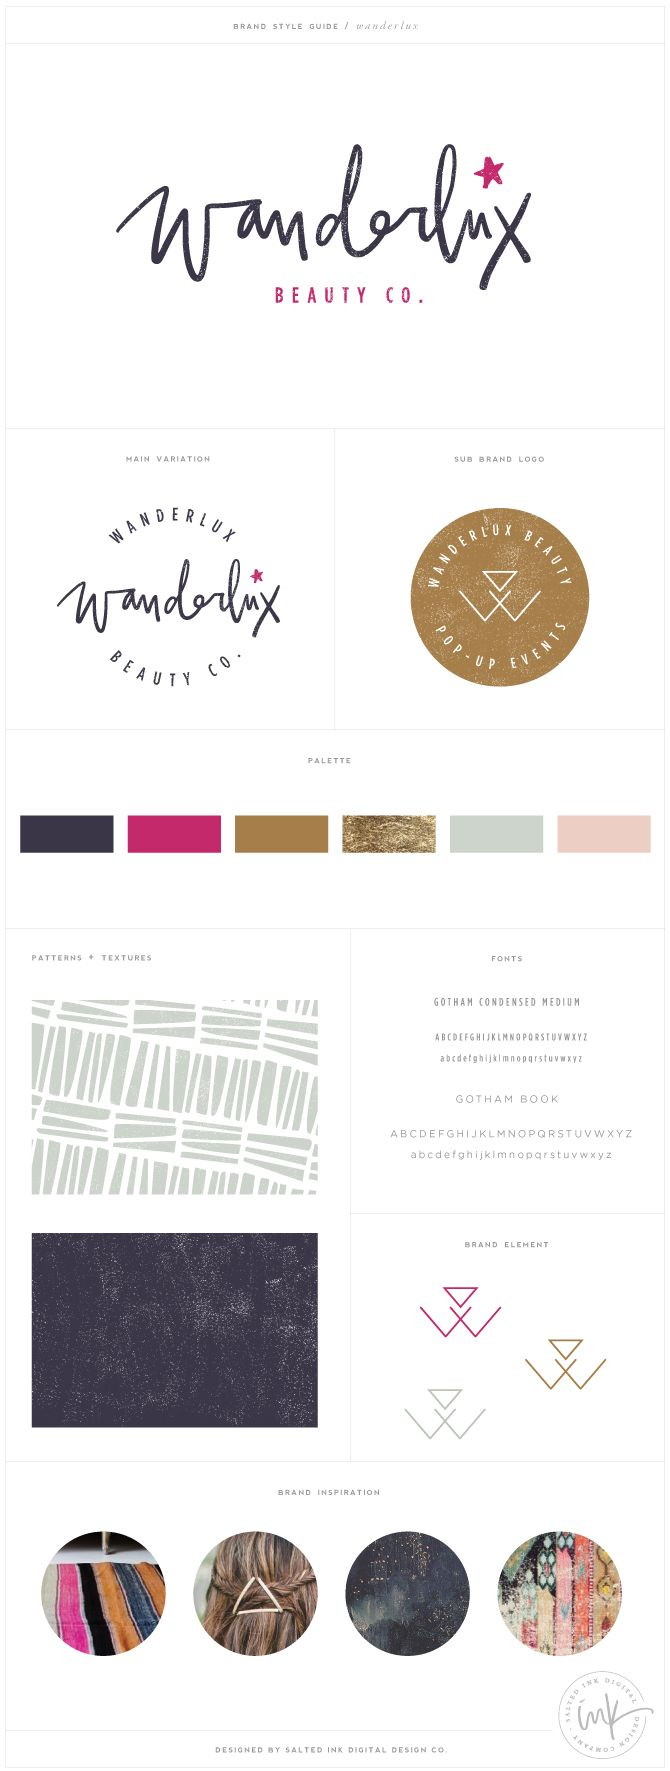 Wanderlux Beauty Co Brand Design by Salted Ink | Brand Stylist and Website Designer | View the full brand design at www.saltedink.com